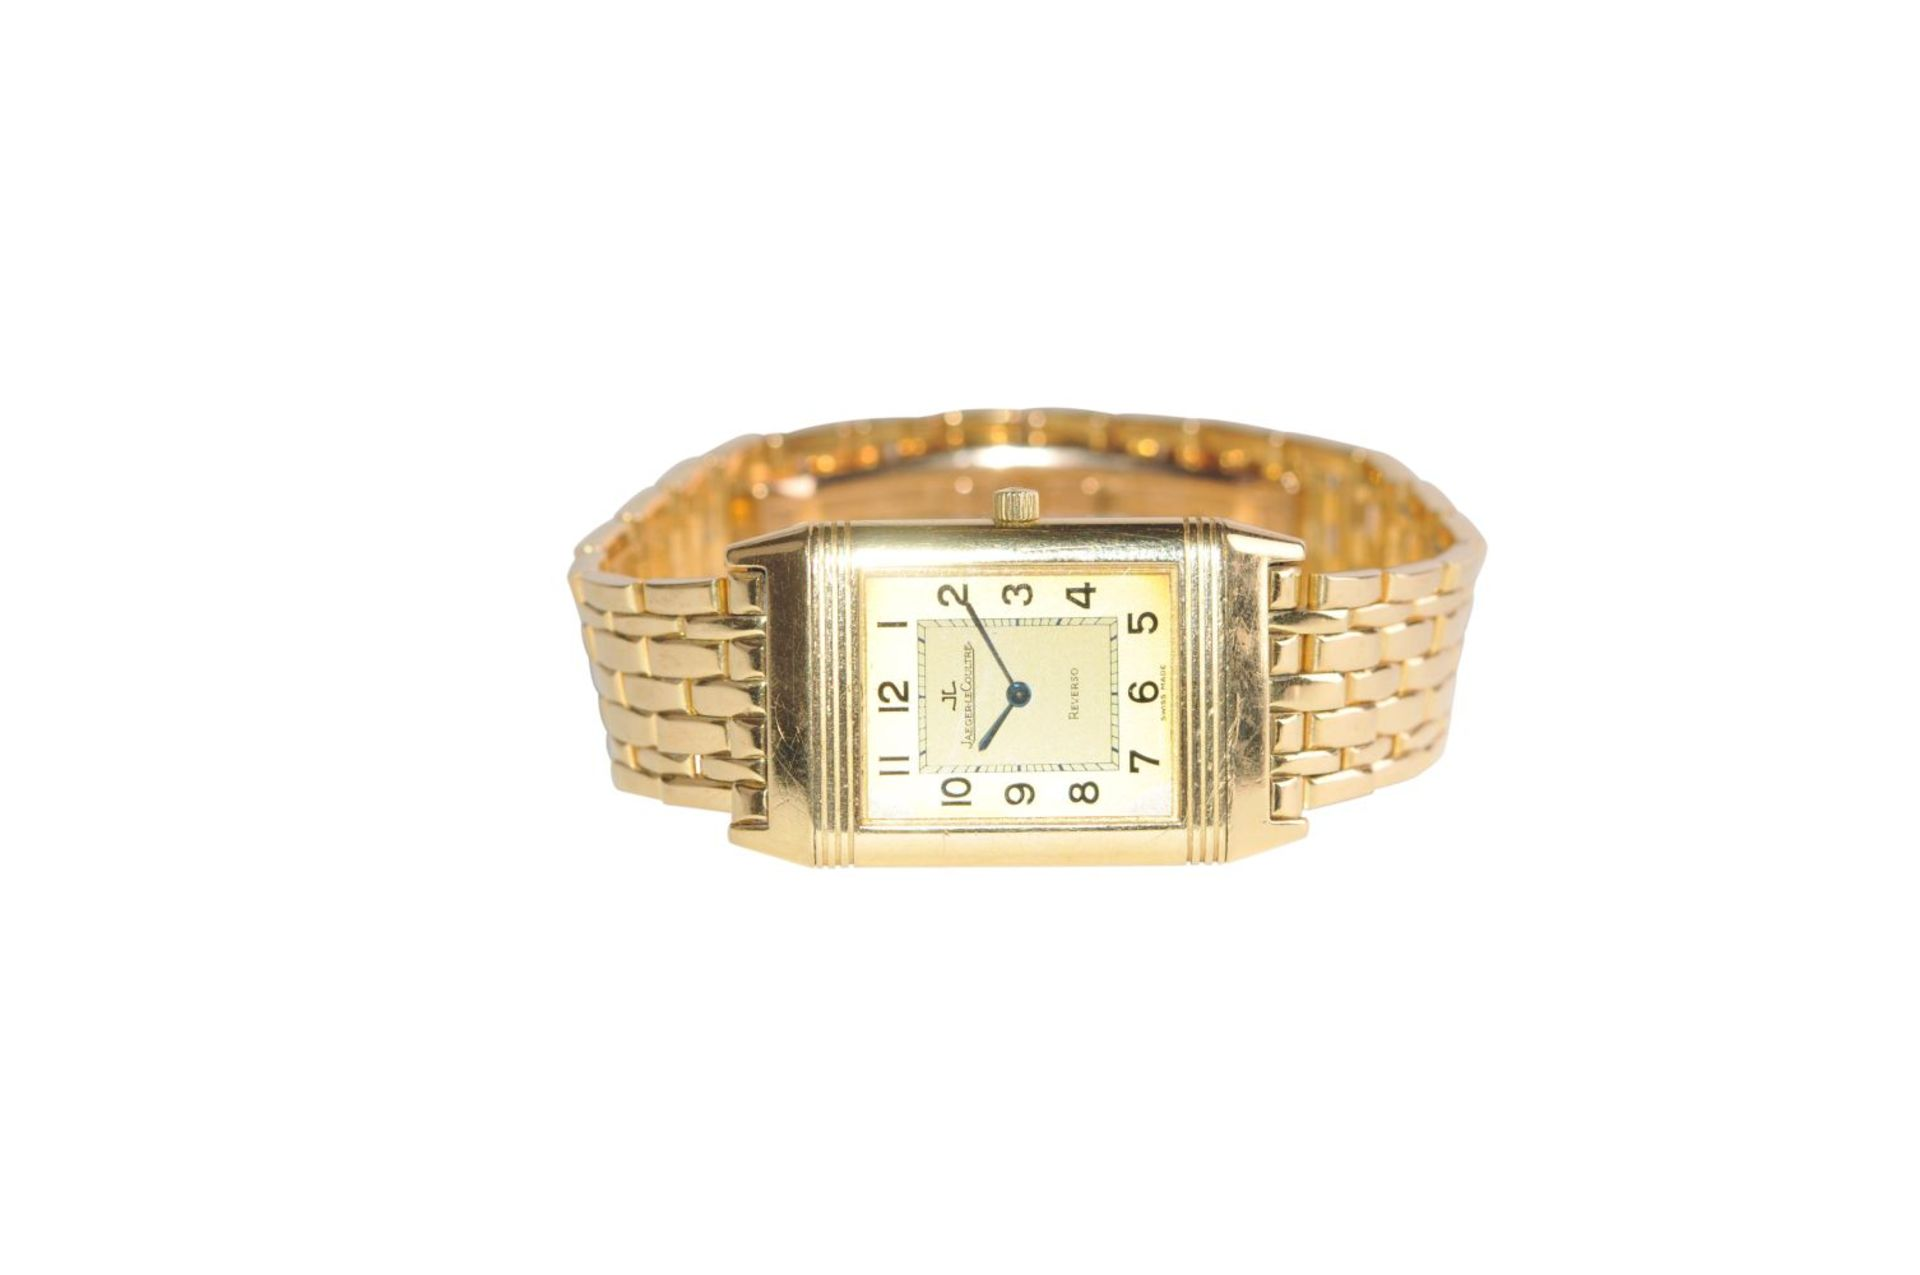 Los 4 - JAEGER LE-COULTRE ReversoJaeger Le Coultre Reverso with gold bracelet, Classic Medium model with